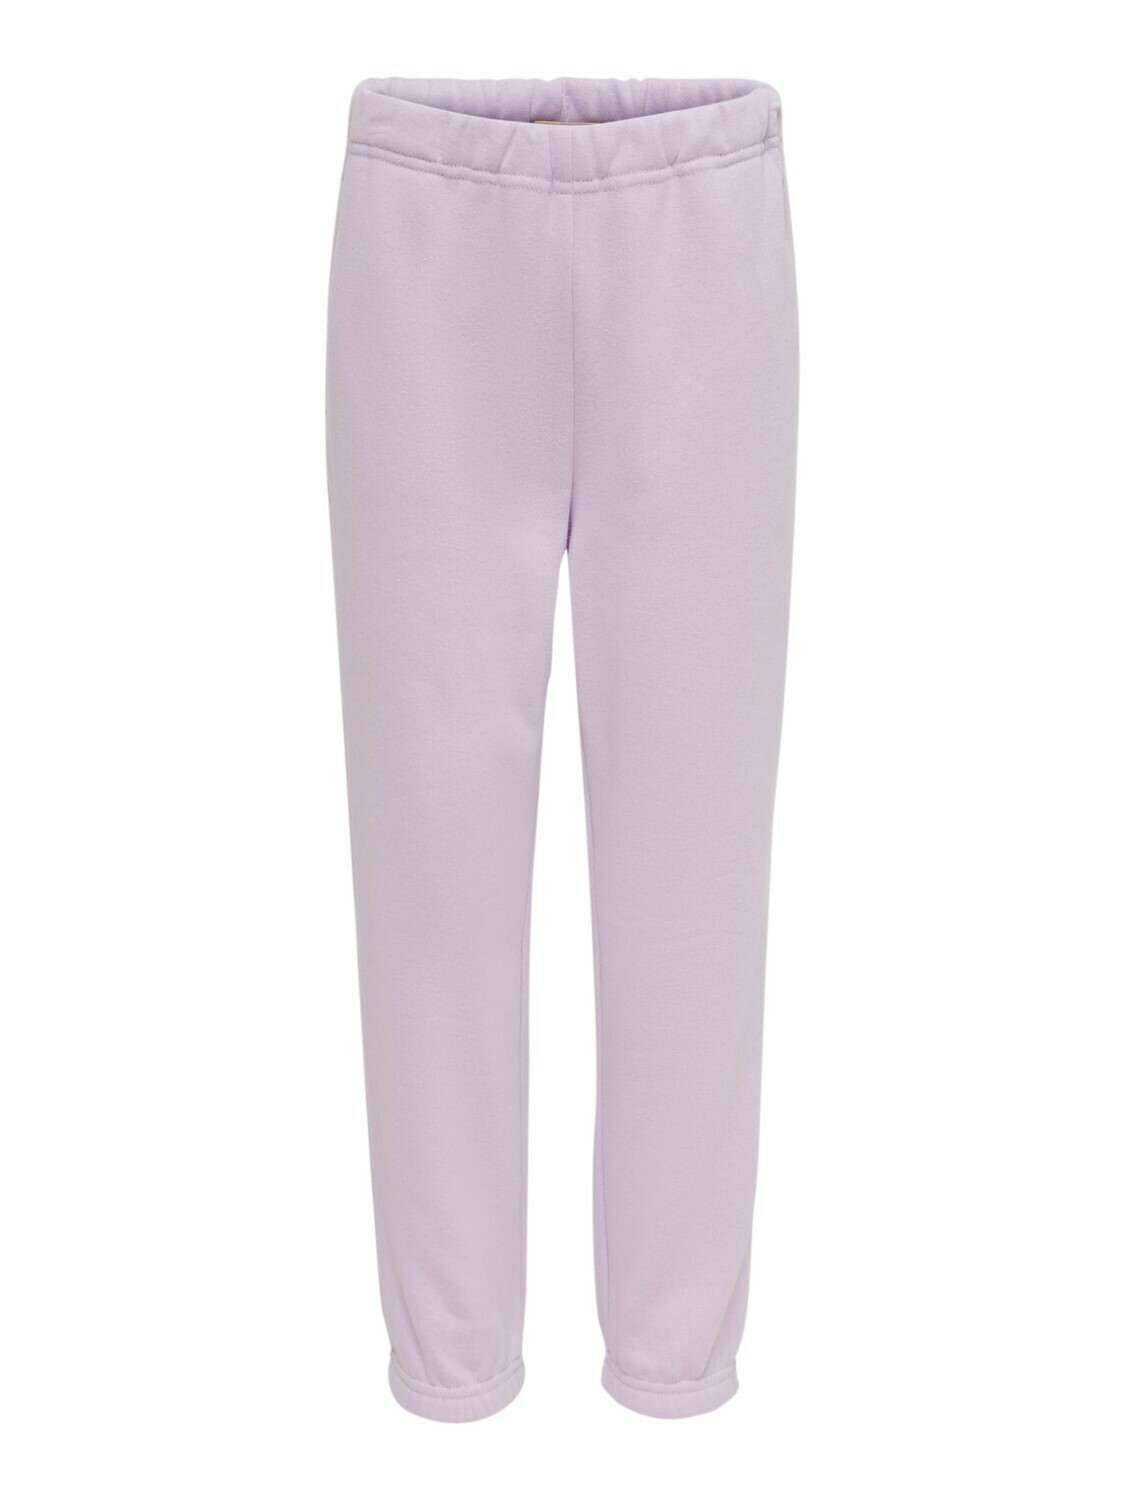 KIDS Broek - COMFY - orchid bloom